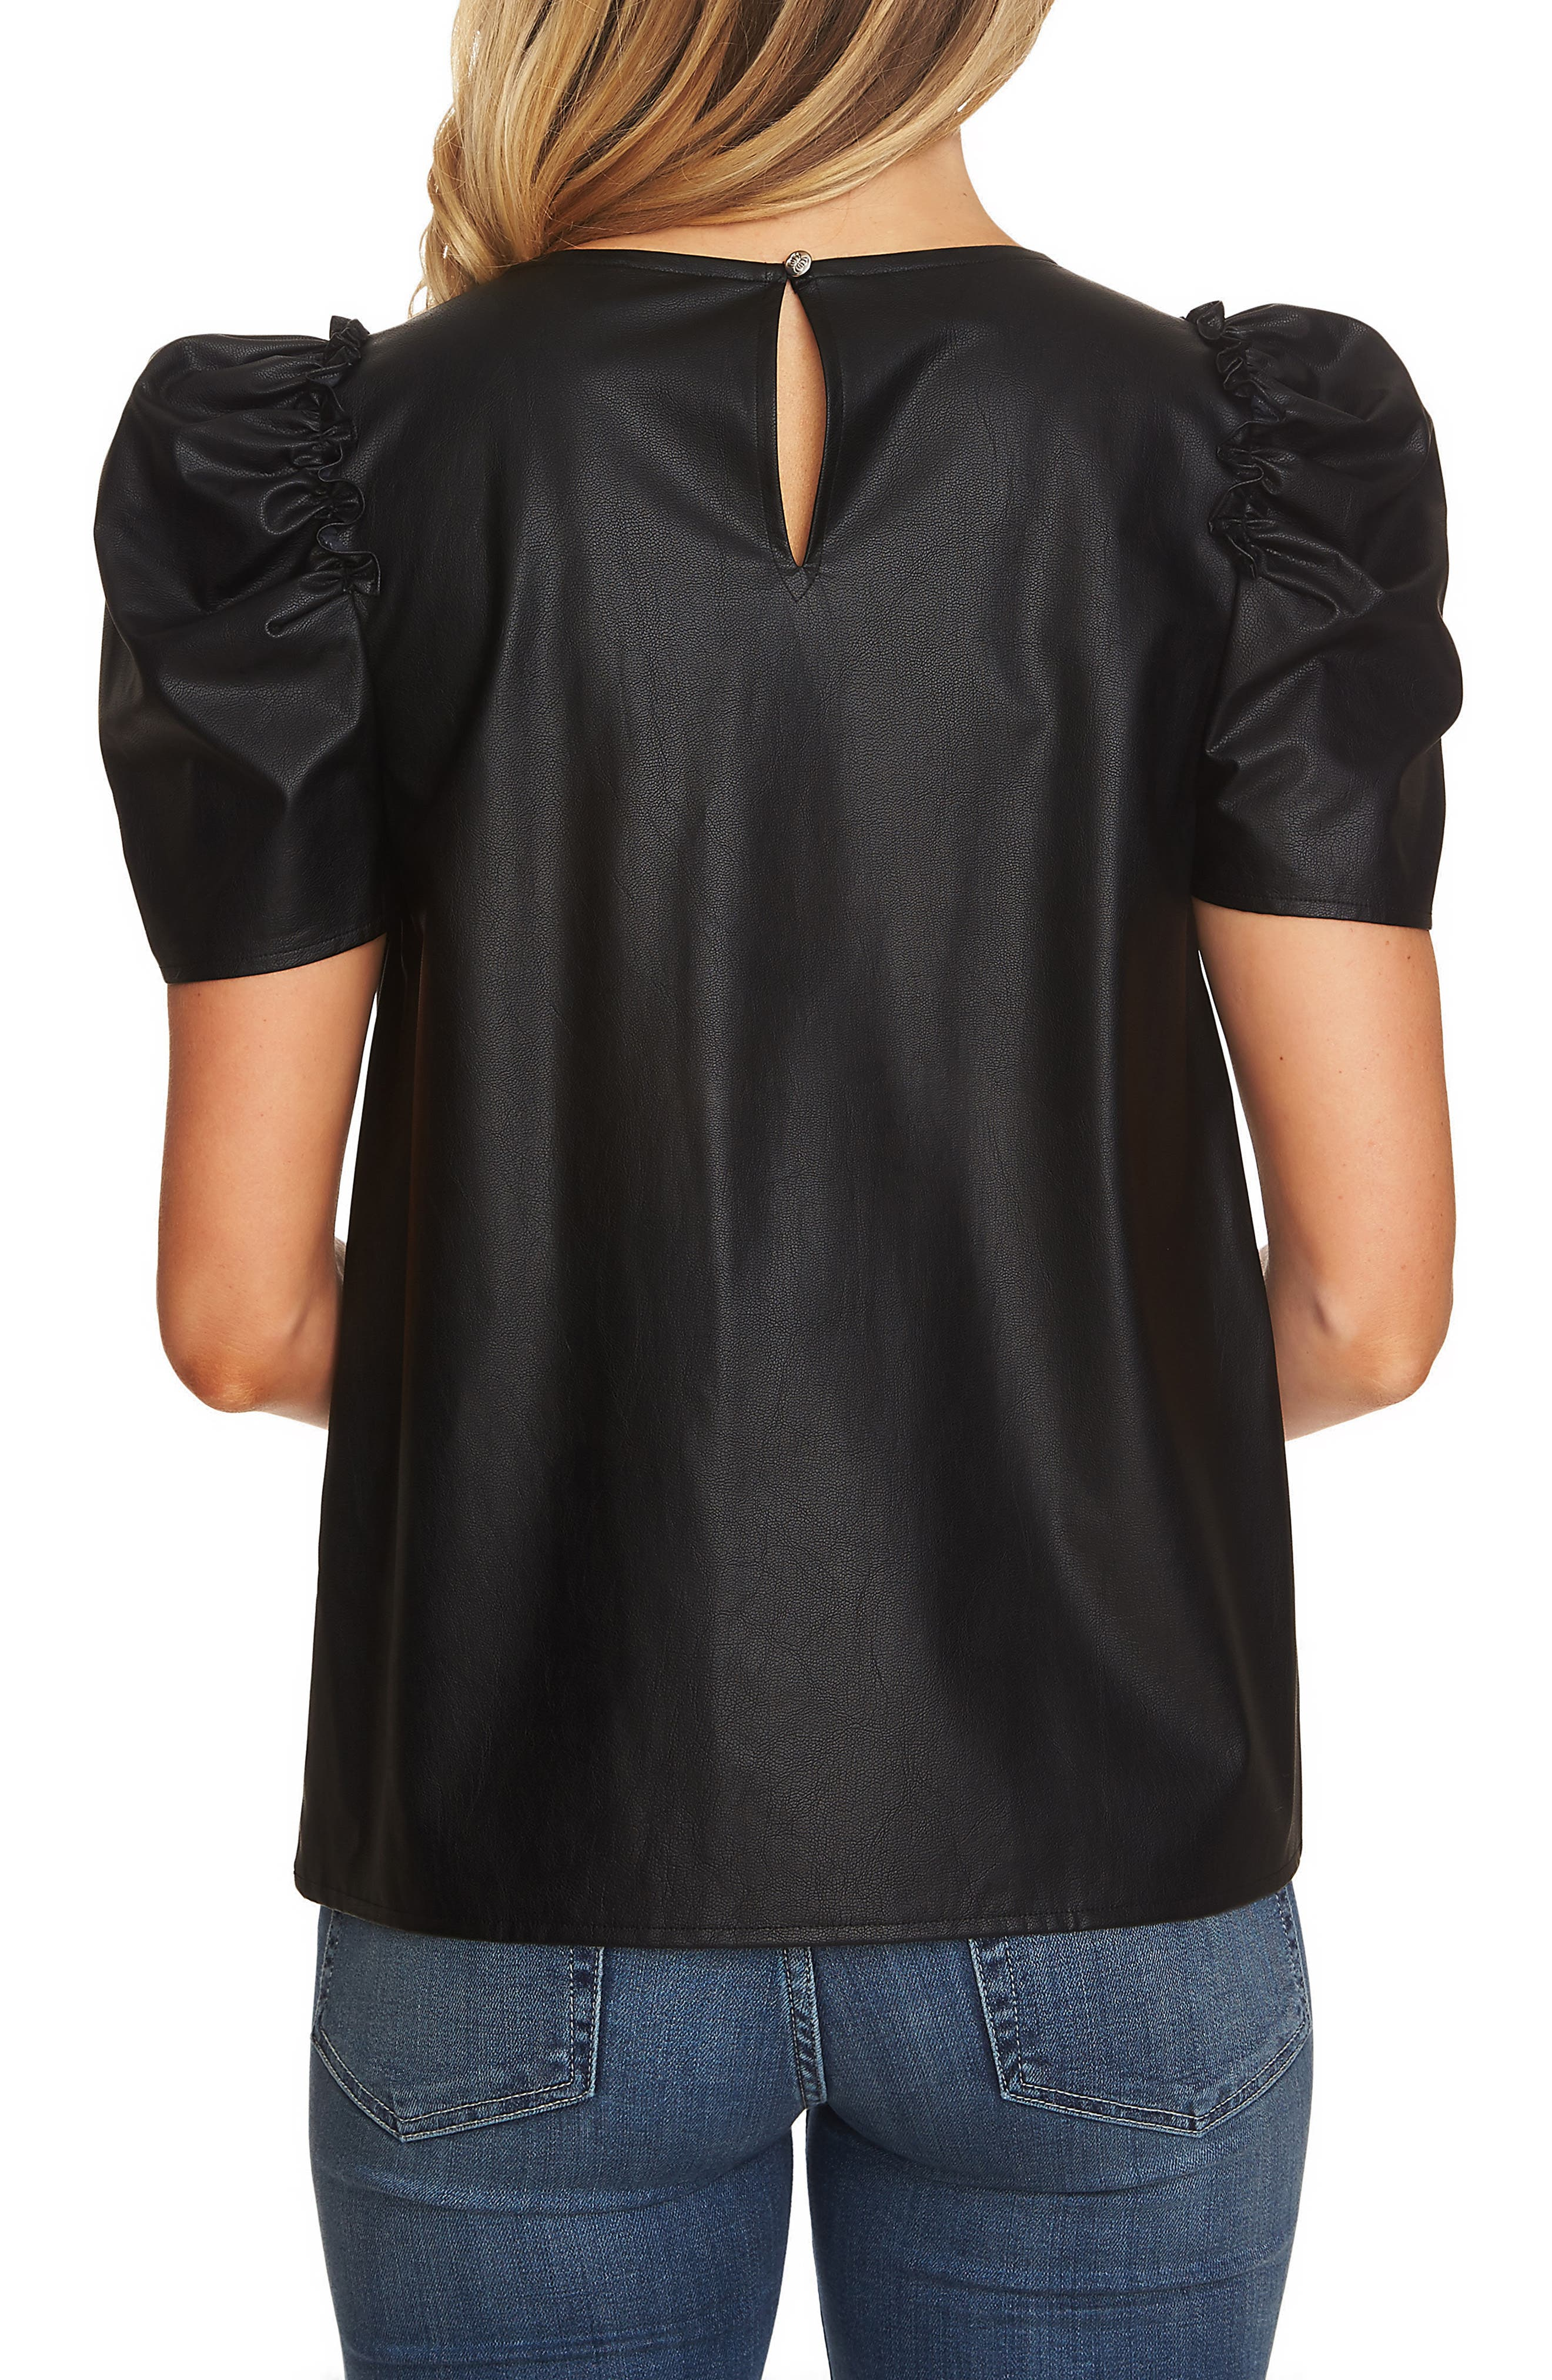 CECE,                             Puff Sleeve Faux Leather Top,                             Alternate thumbnail 2, color,                             006